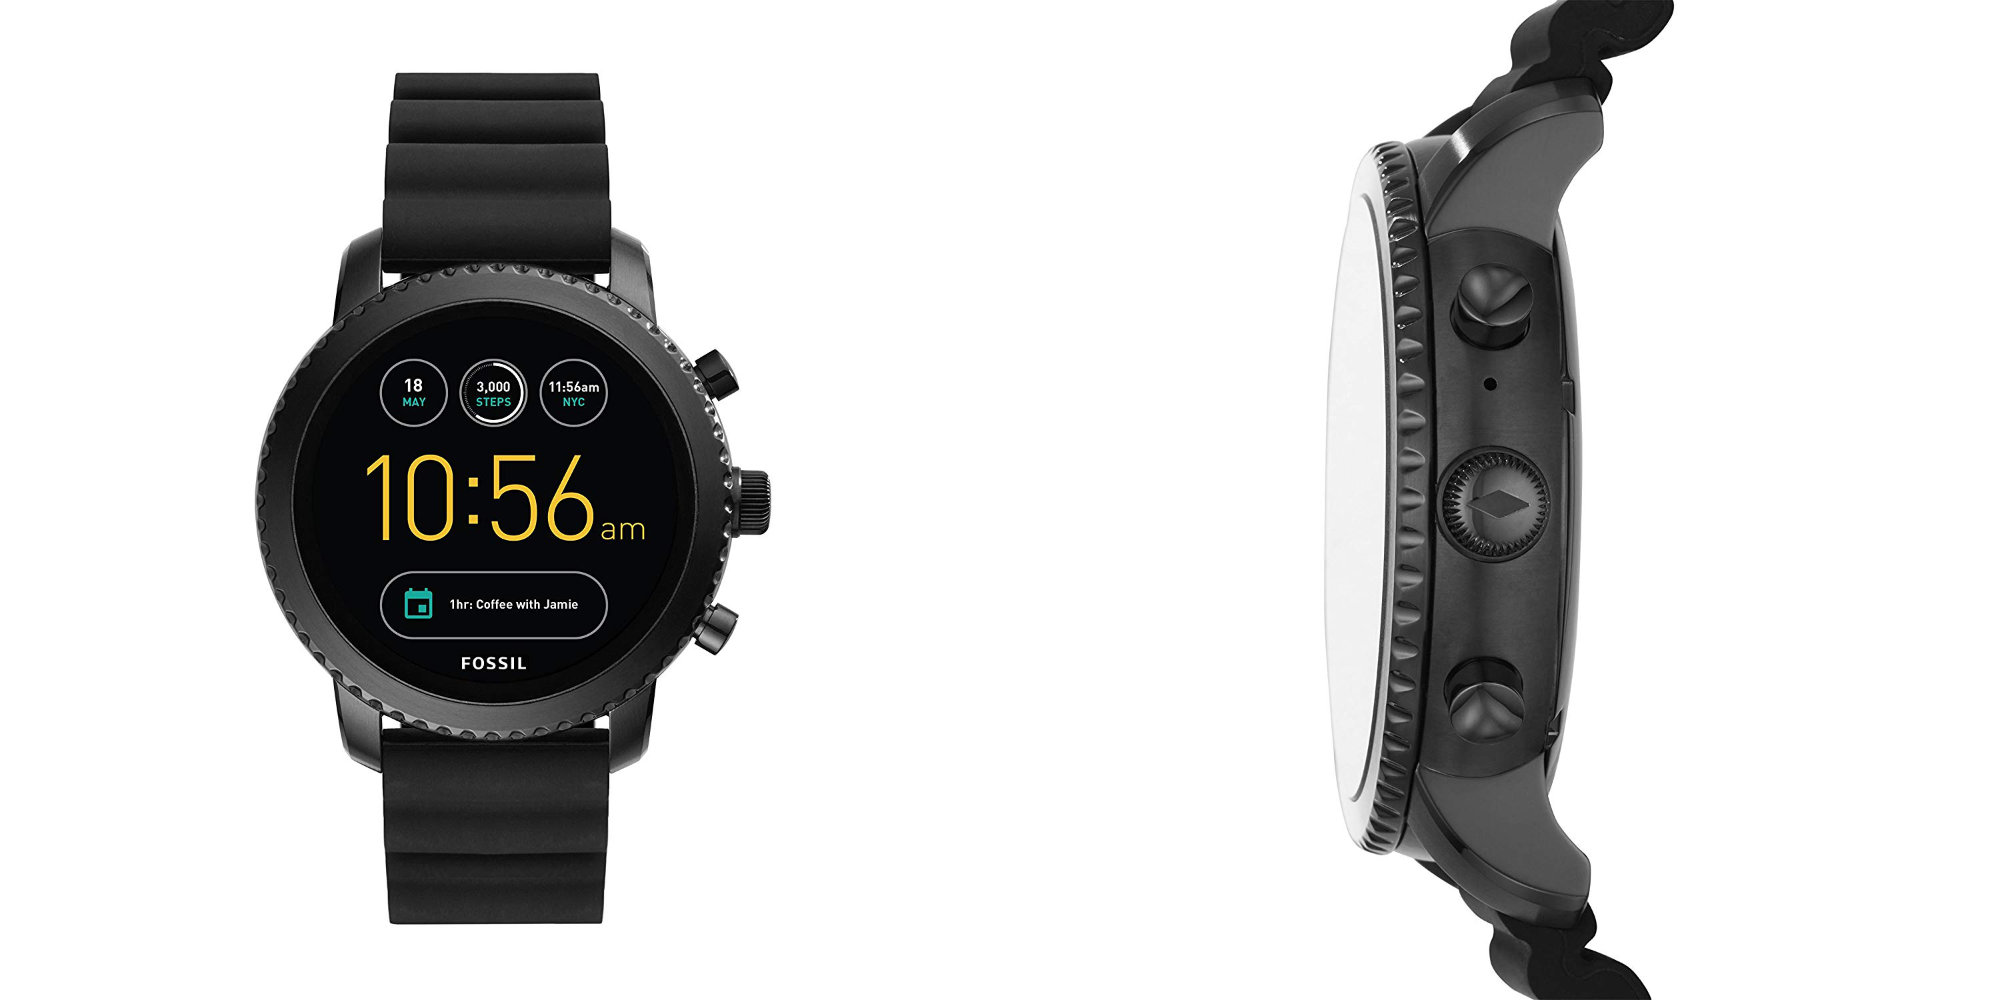 Fossil Q Gen 3 Explorist puts Google's Wear OS on your wrist for $179 shipped (Reg. $255)